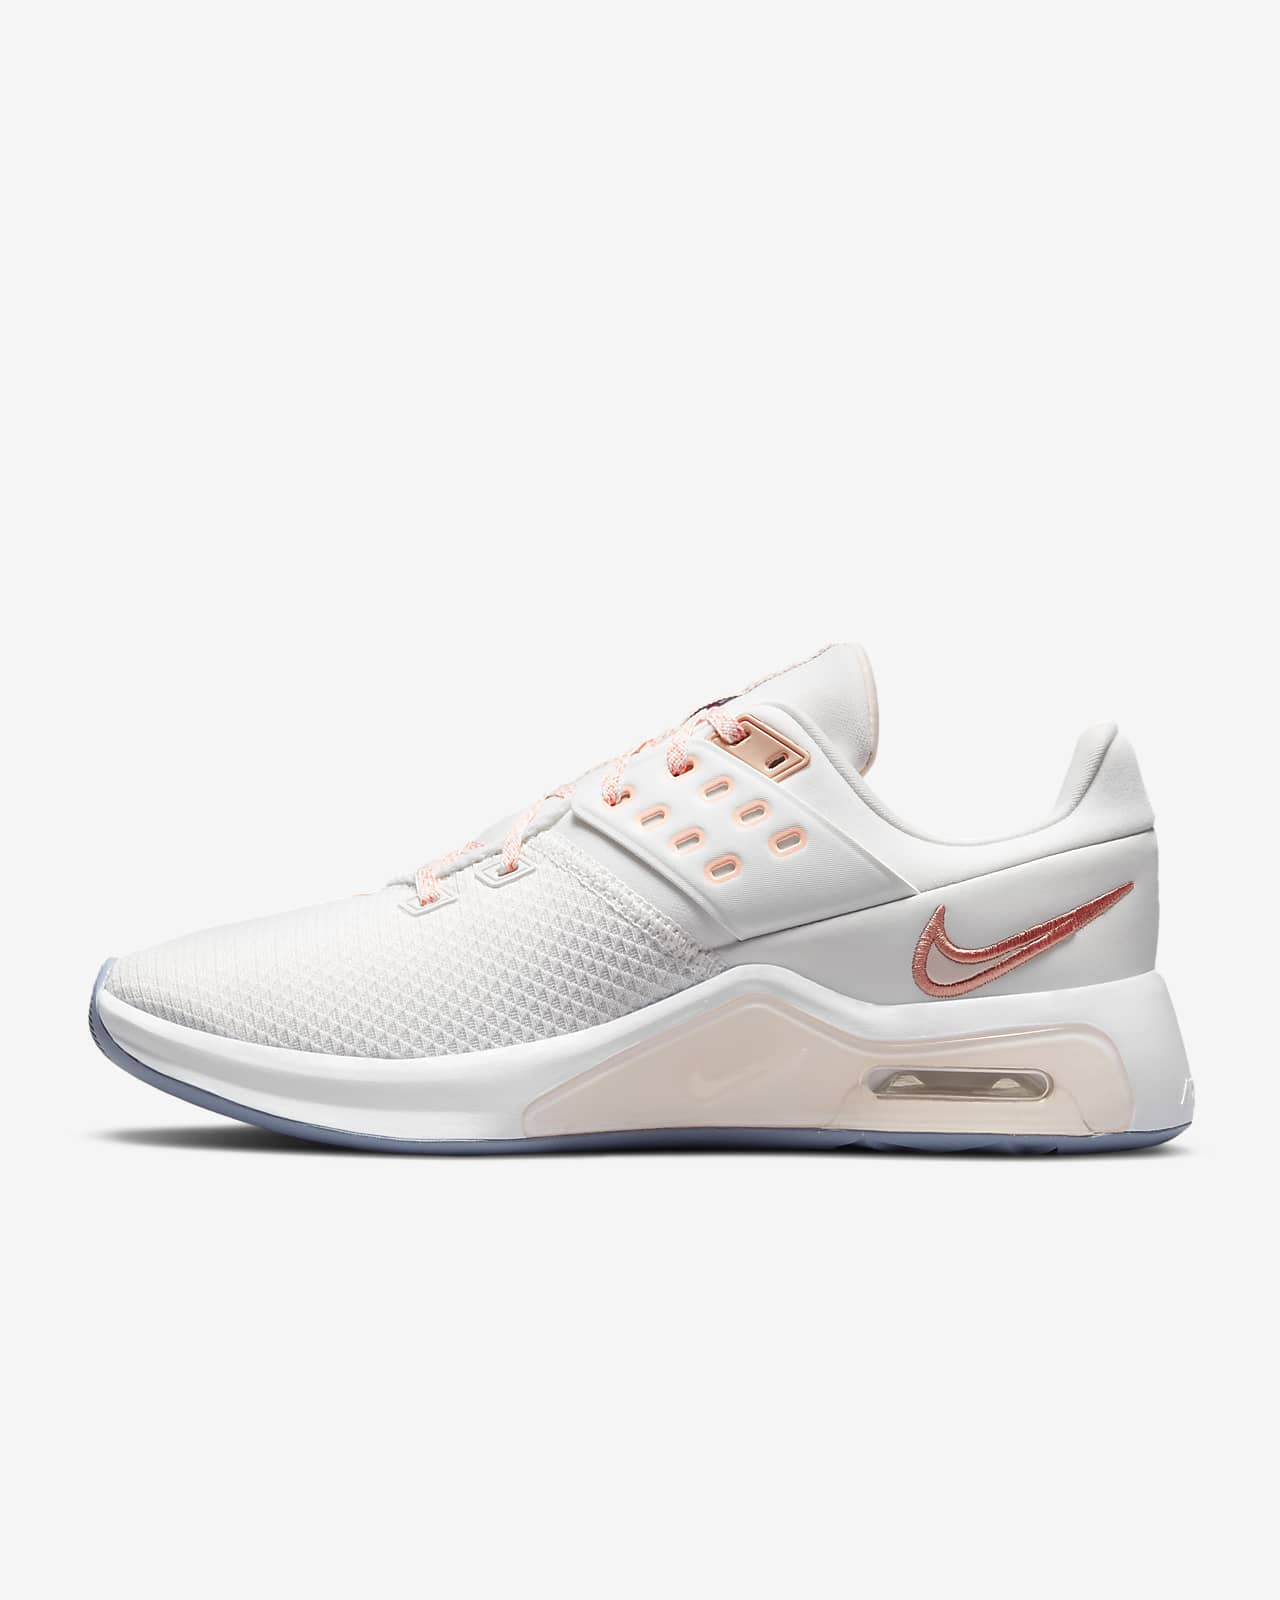 Nike Air Max Bella TR 4 Women's Training Shoe